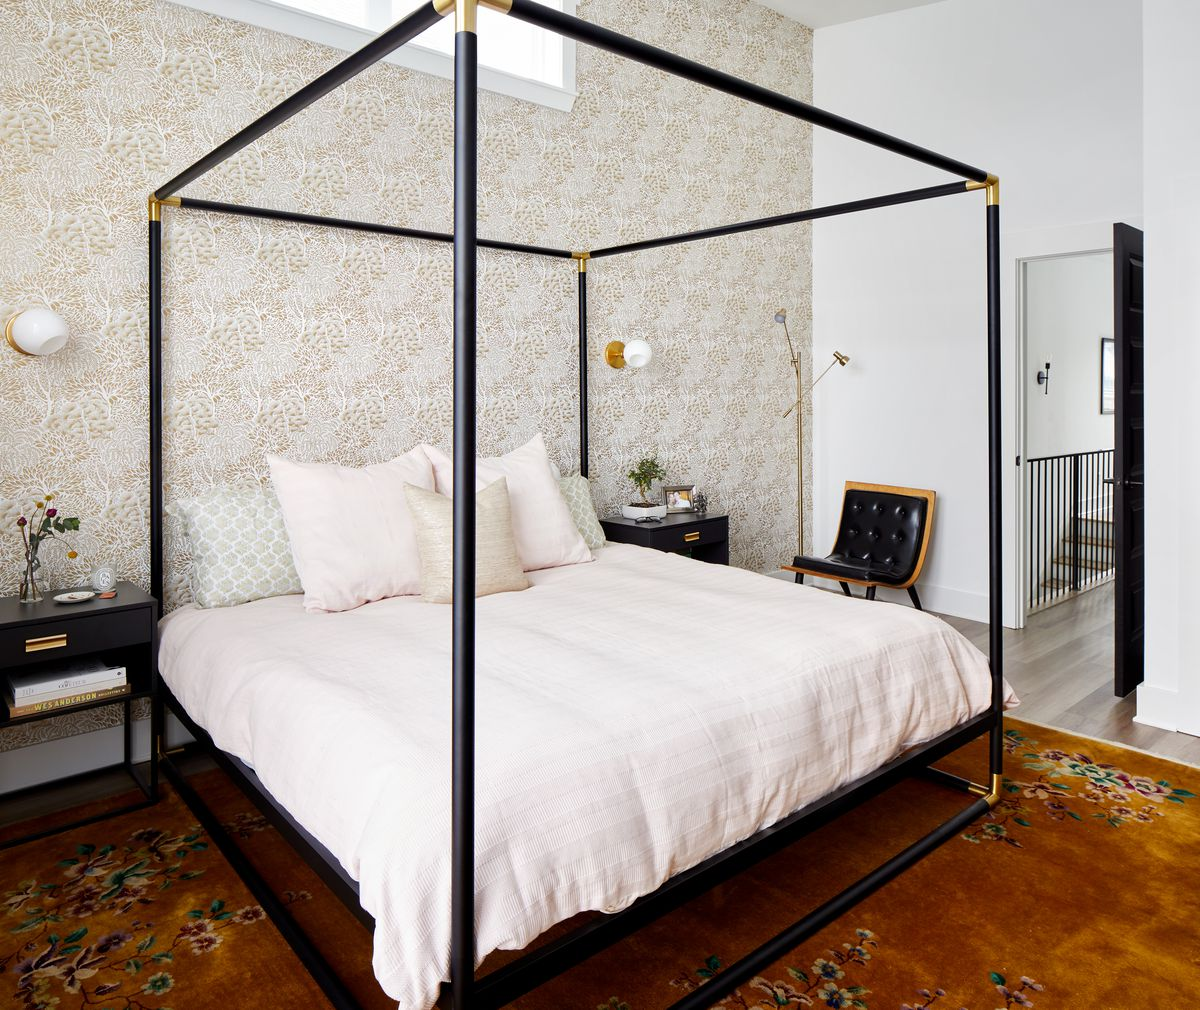 A bedroom with a large black four poster bed with white bed linens. There is an orange patterned area rug on the floor and a black end table with a plant